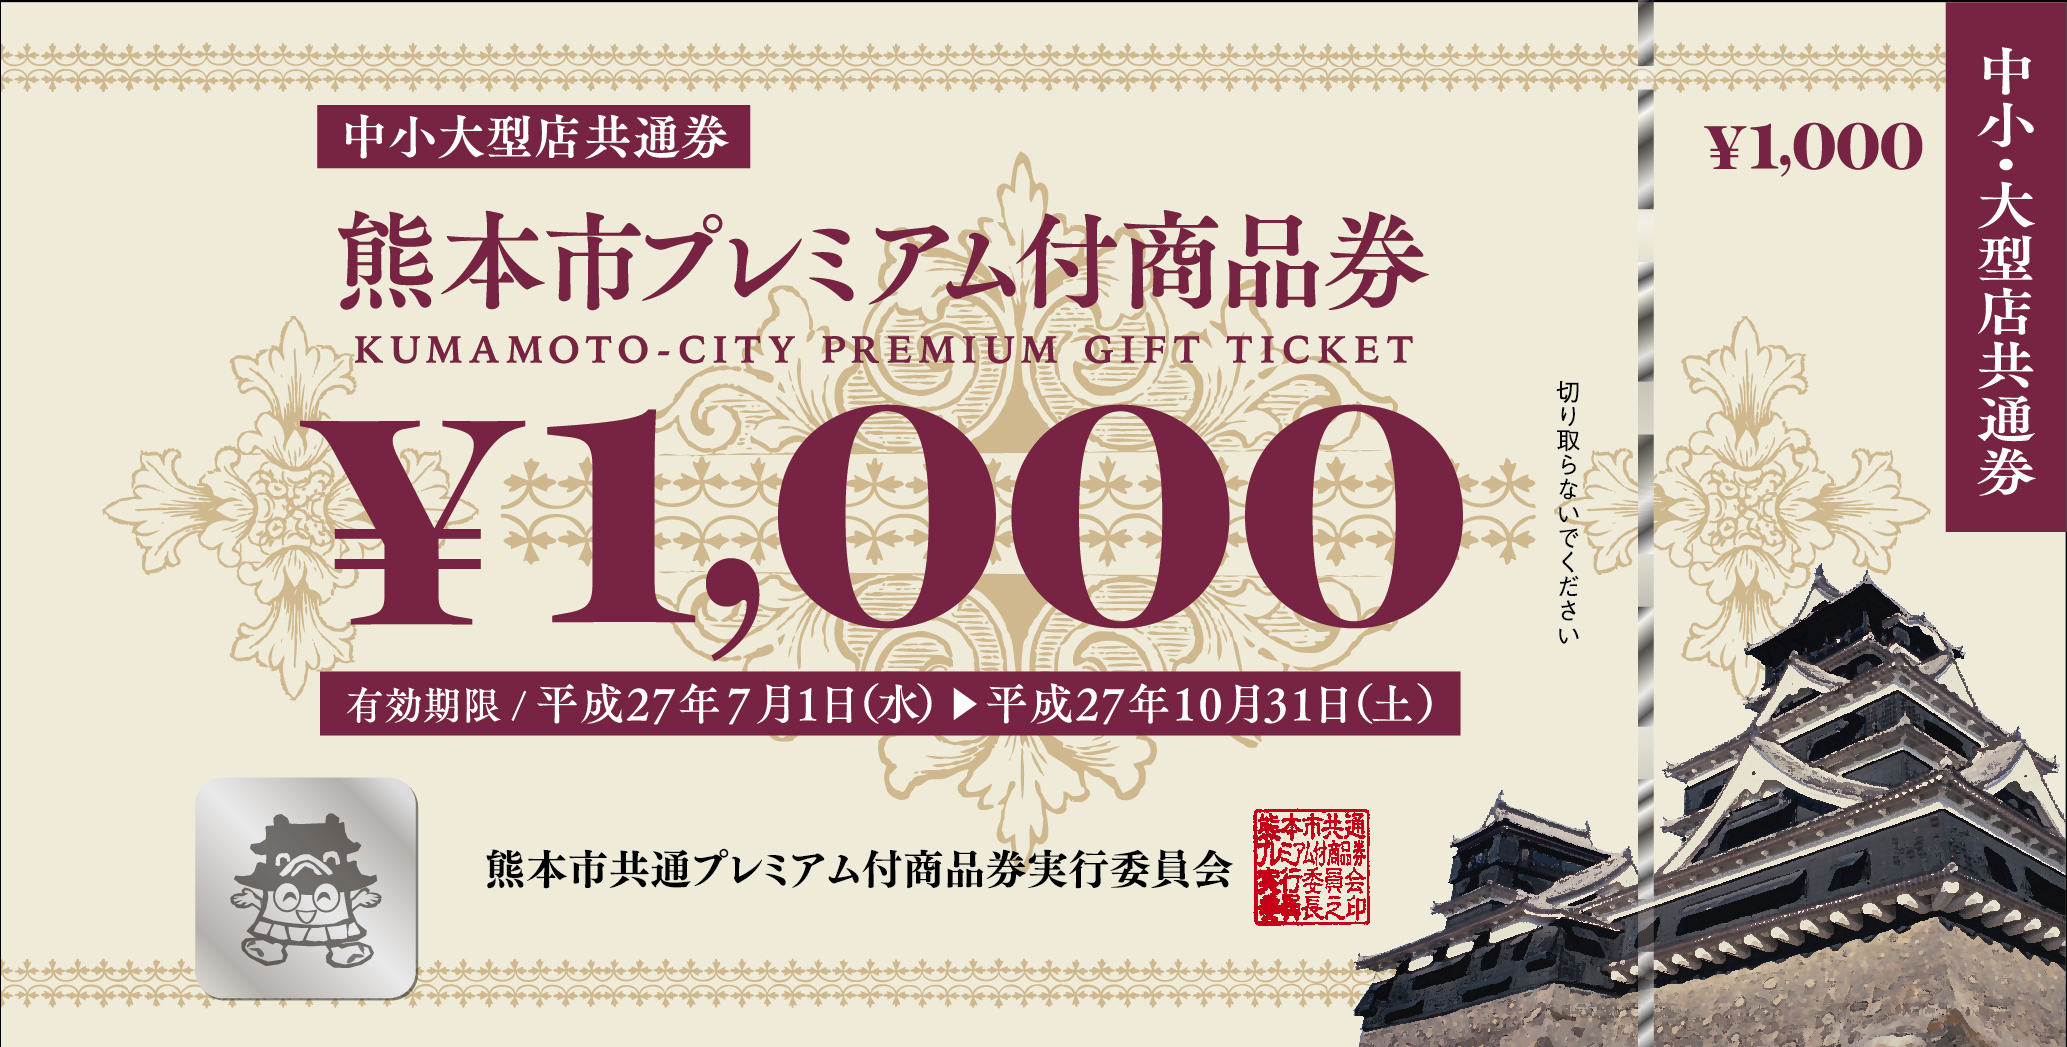 0522gift ticket2-si-01